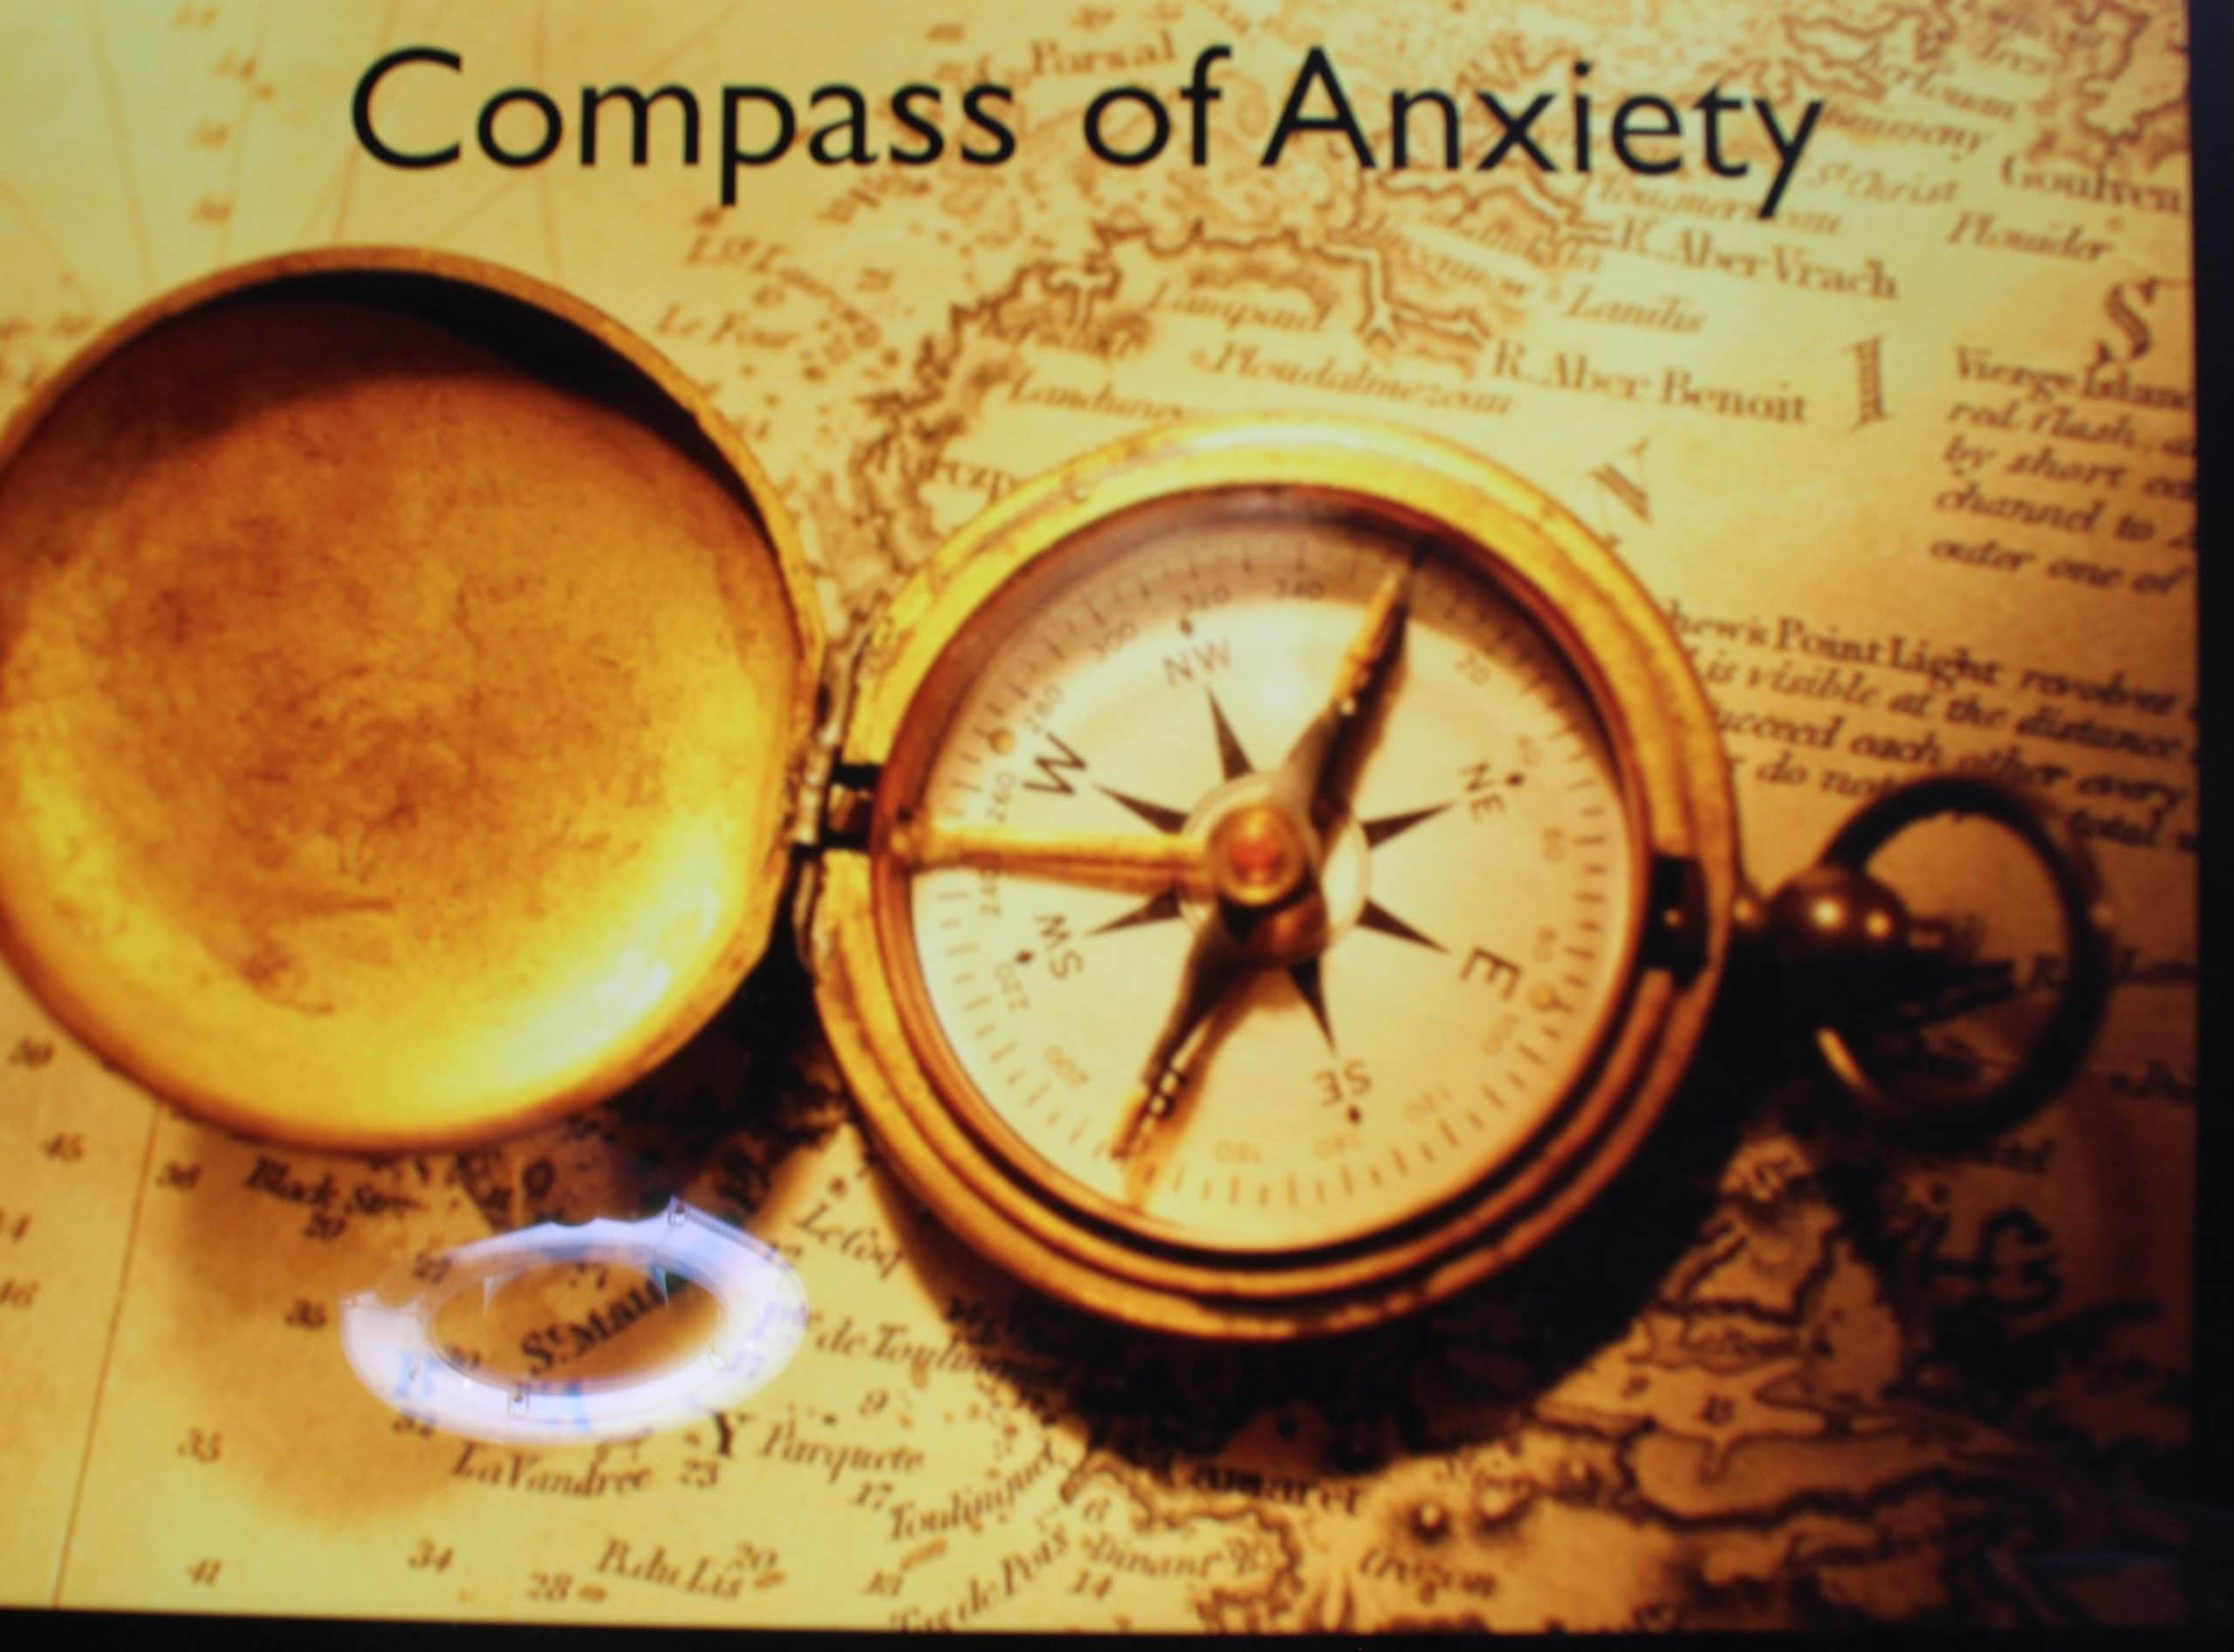 Compass of Anxiety